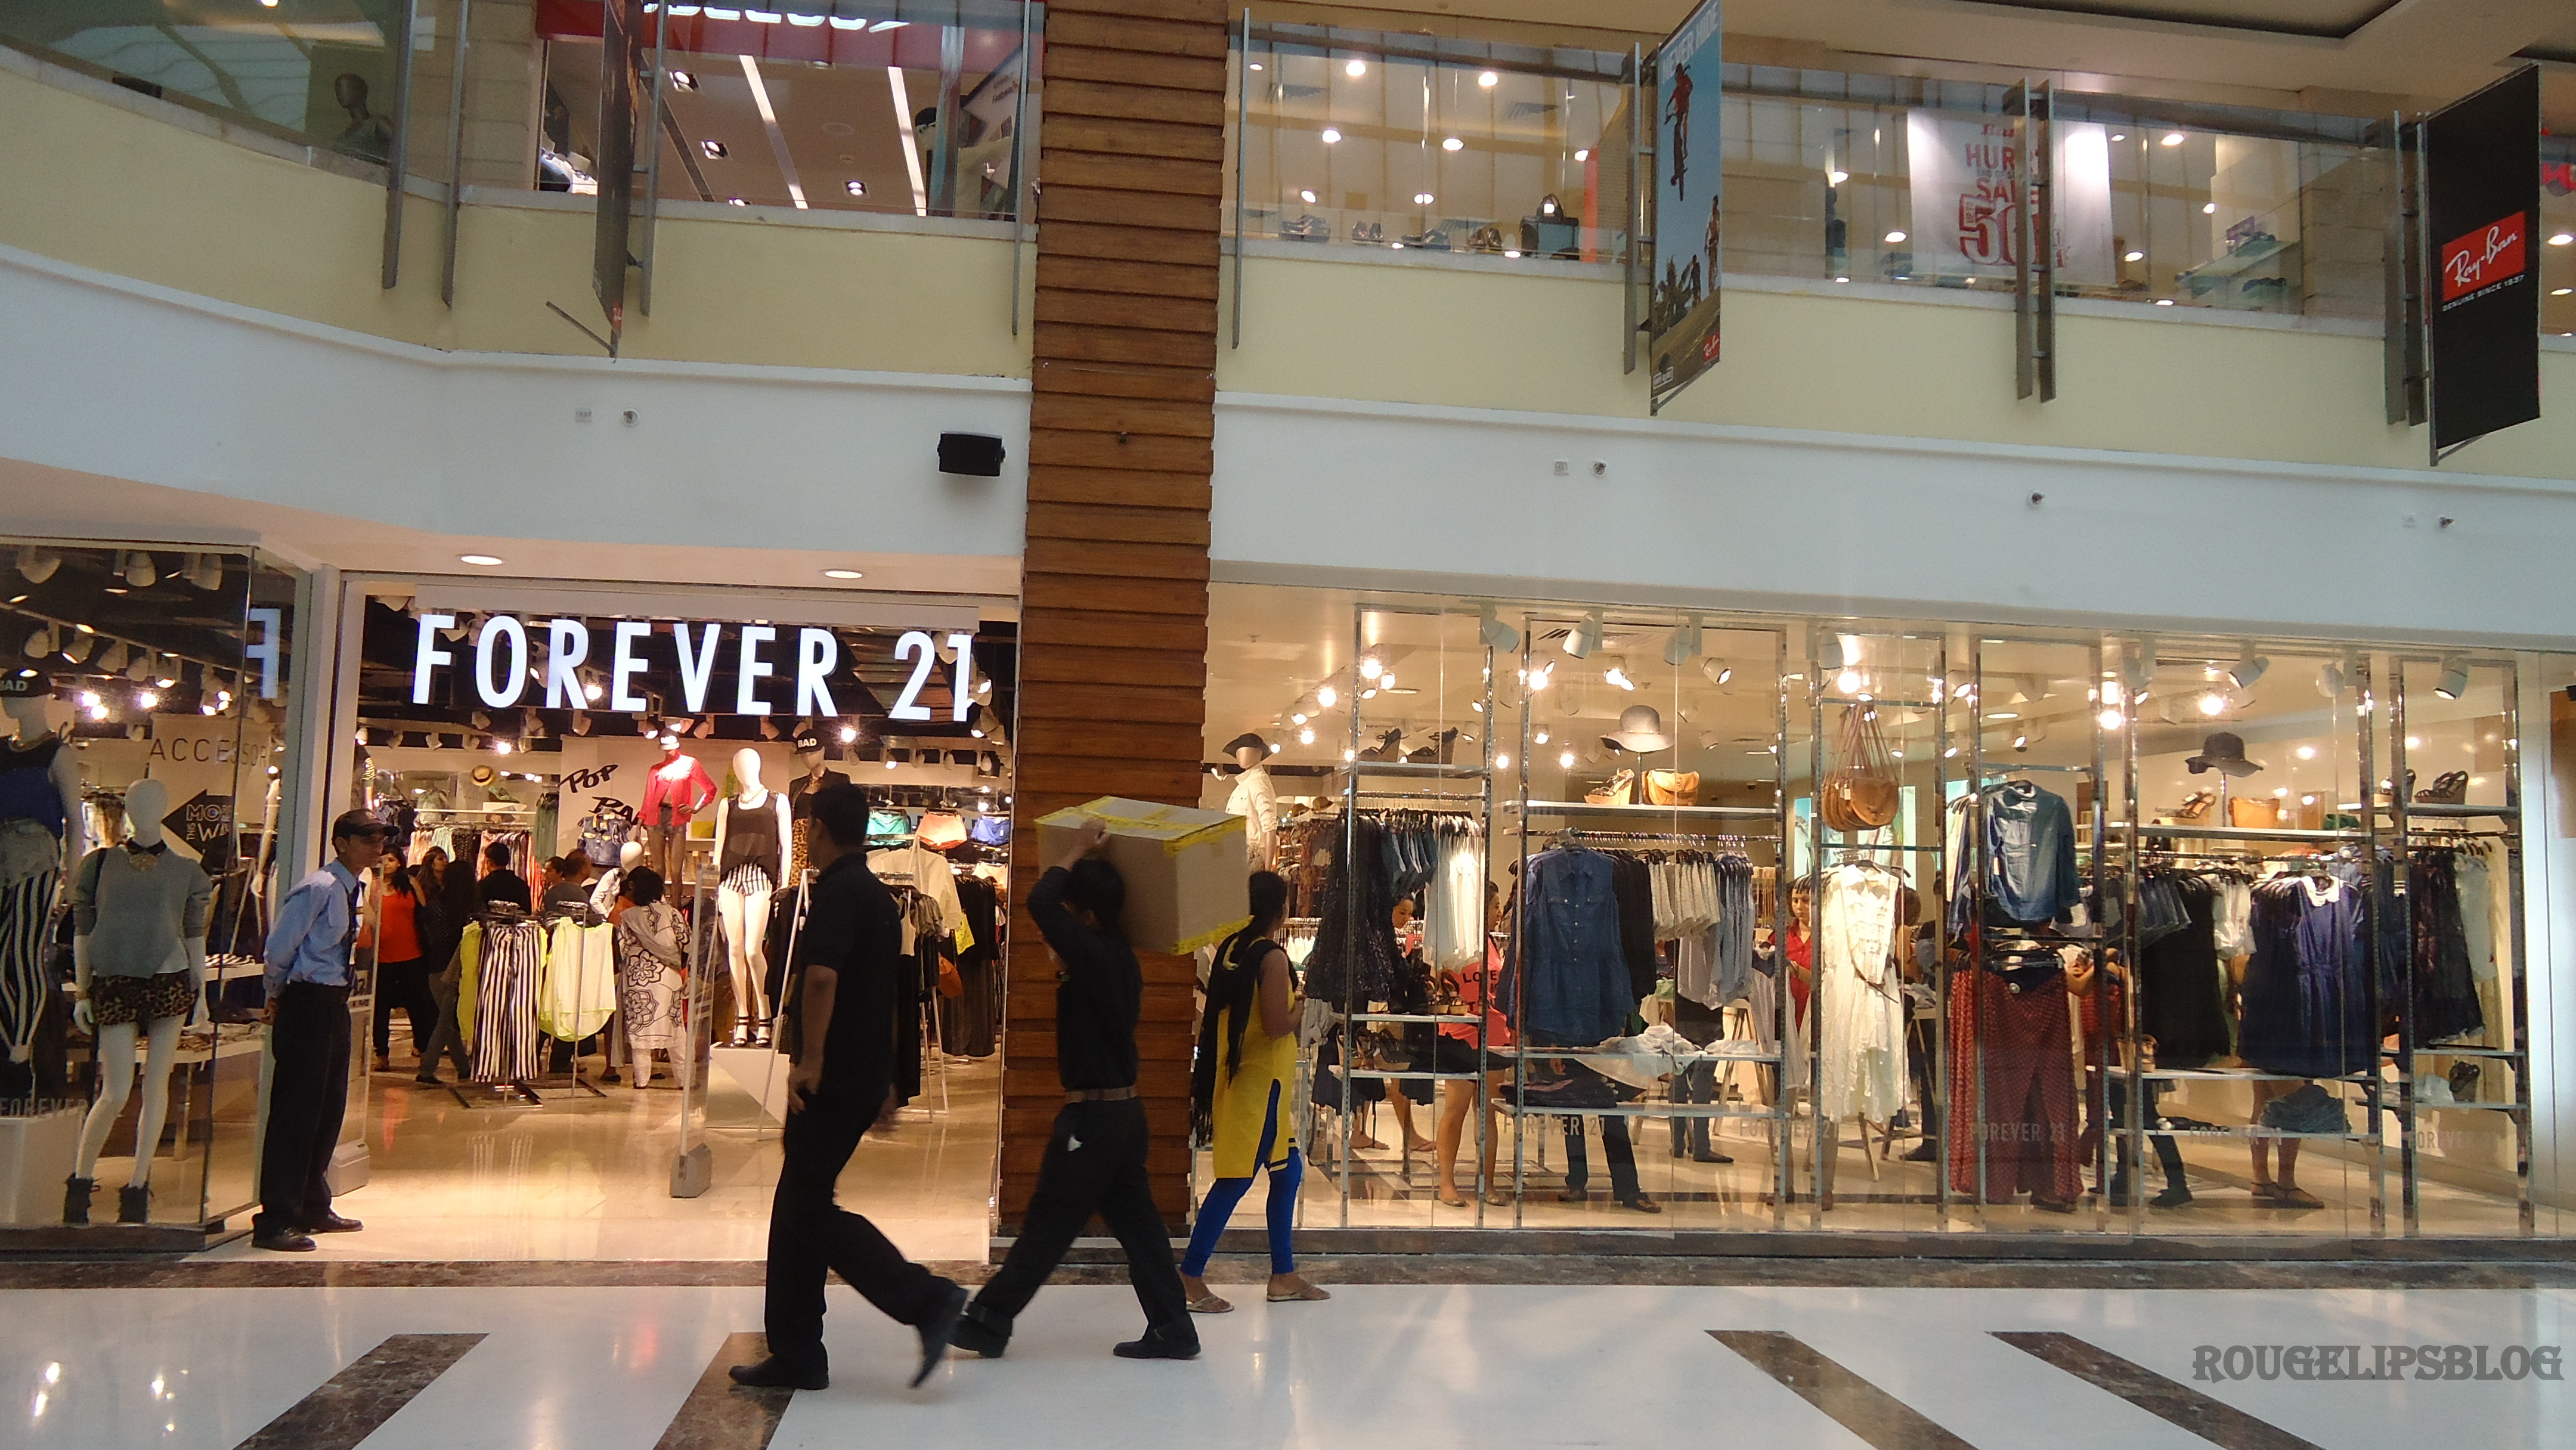 21 Forever Beauty News Forever 21 New Store Opens In New Delhi